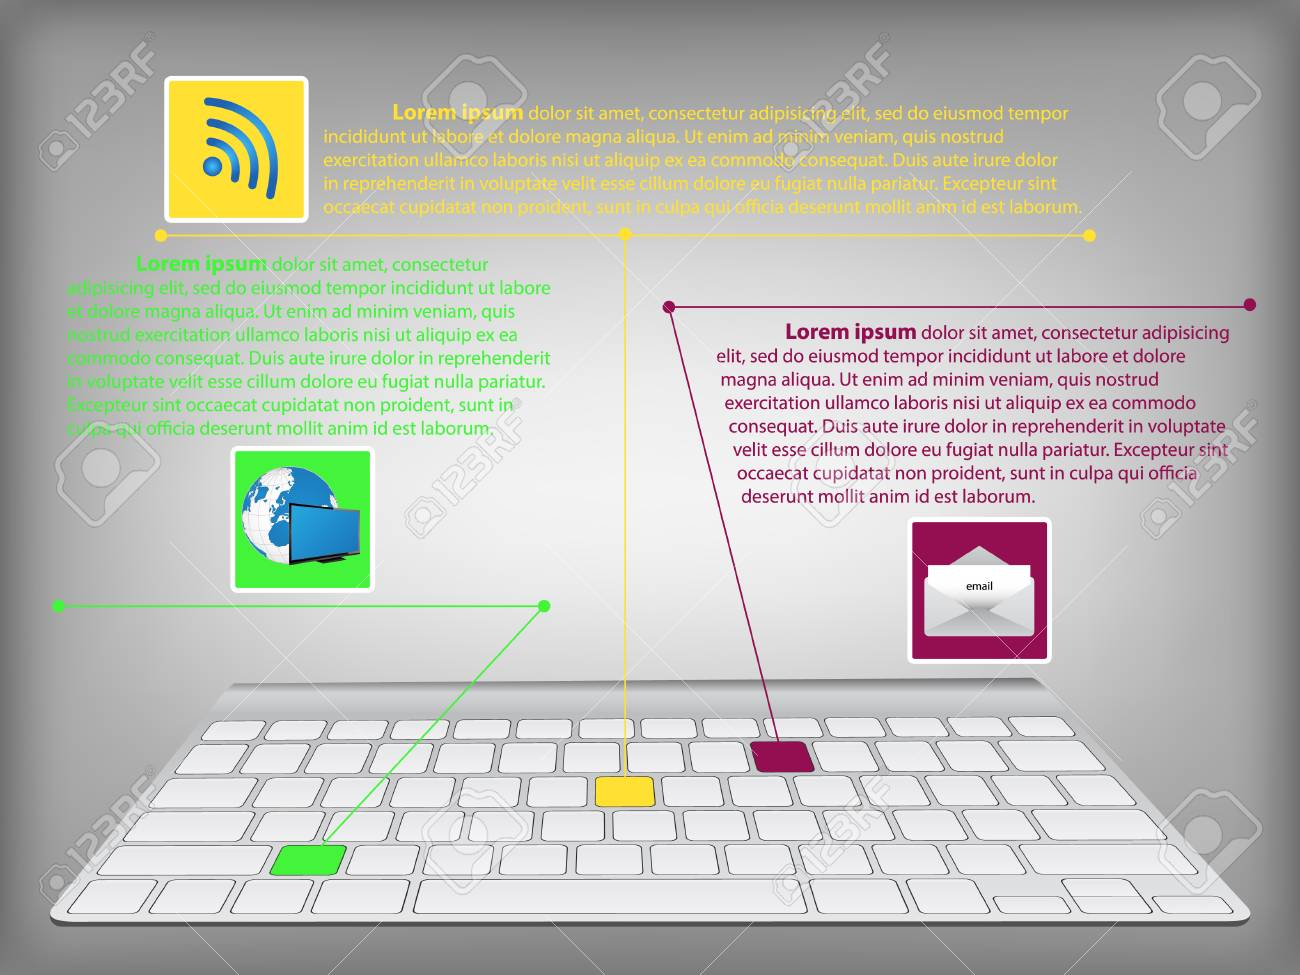 hight resolution of infographic diagram with desktop keyboard technology and business concept vector illustration eps 10 stock